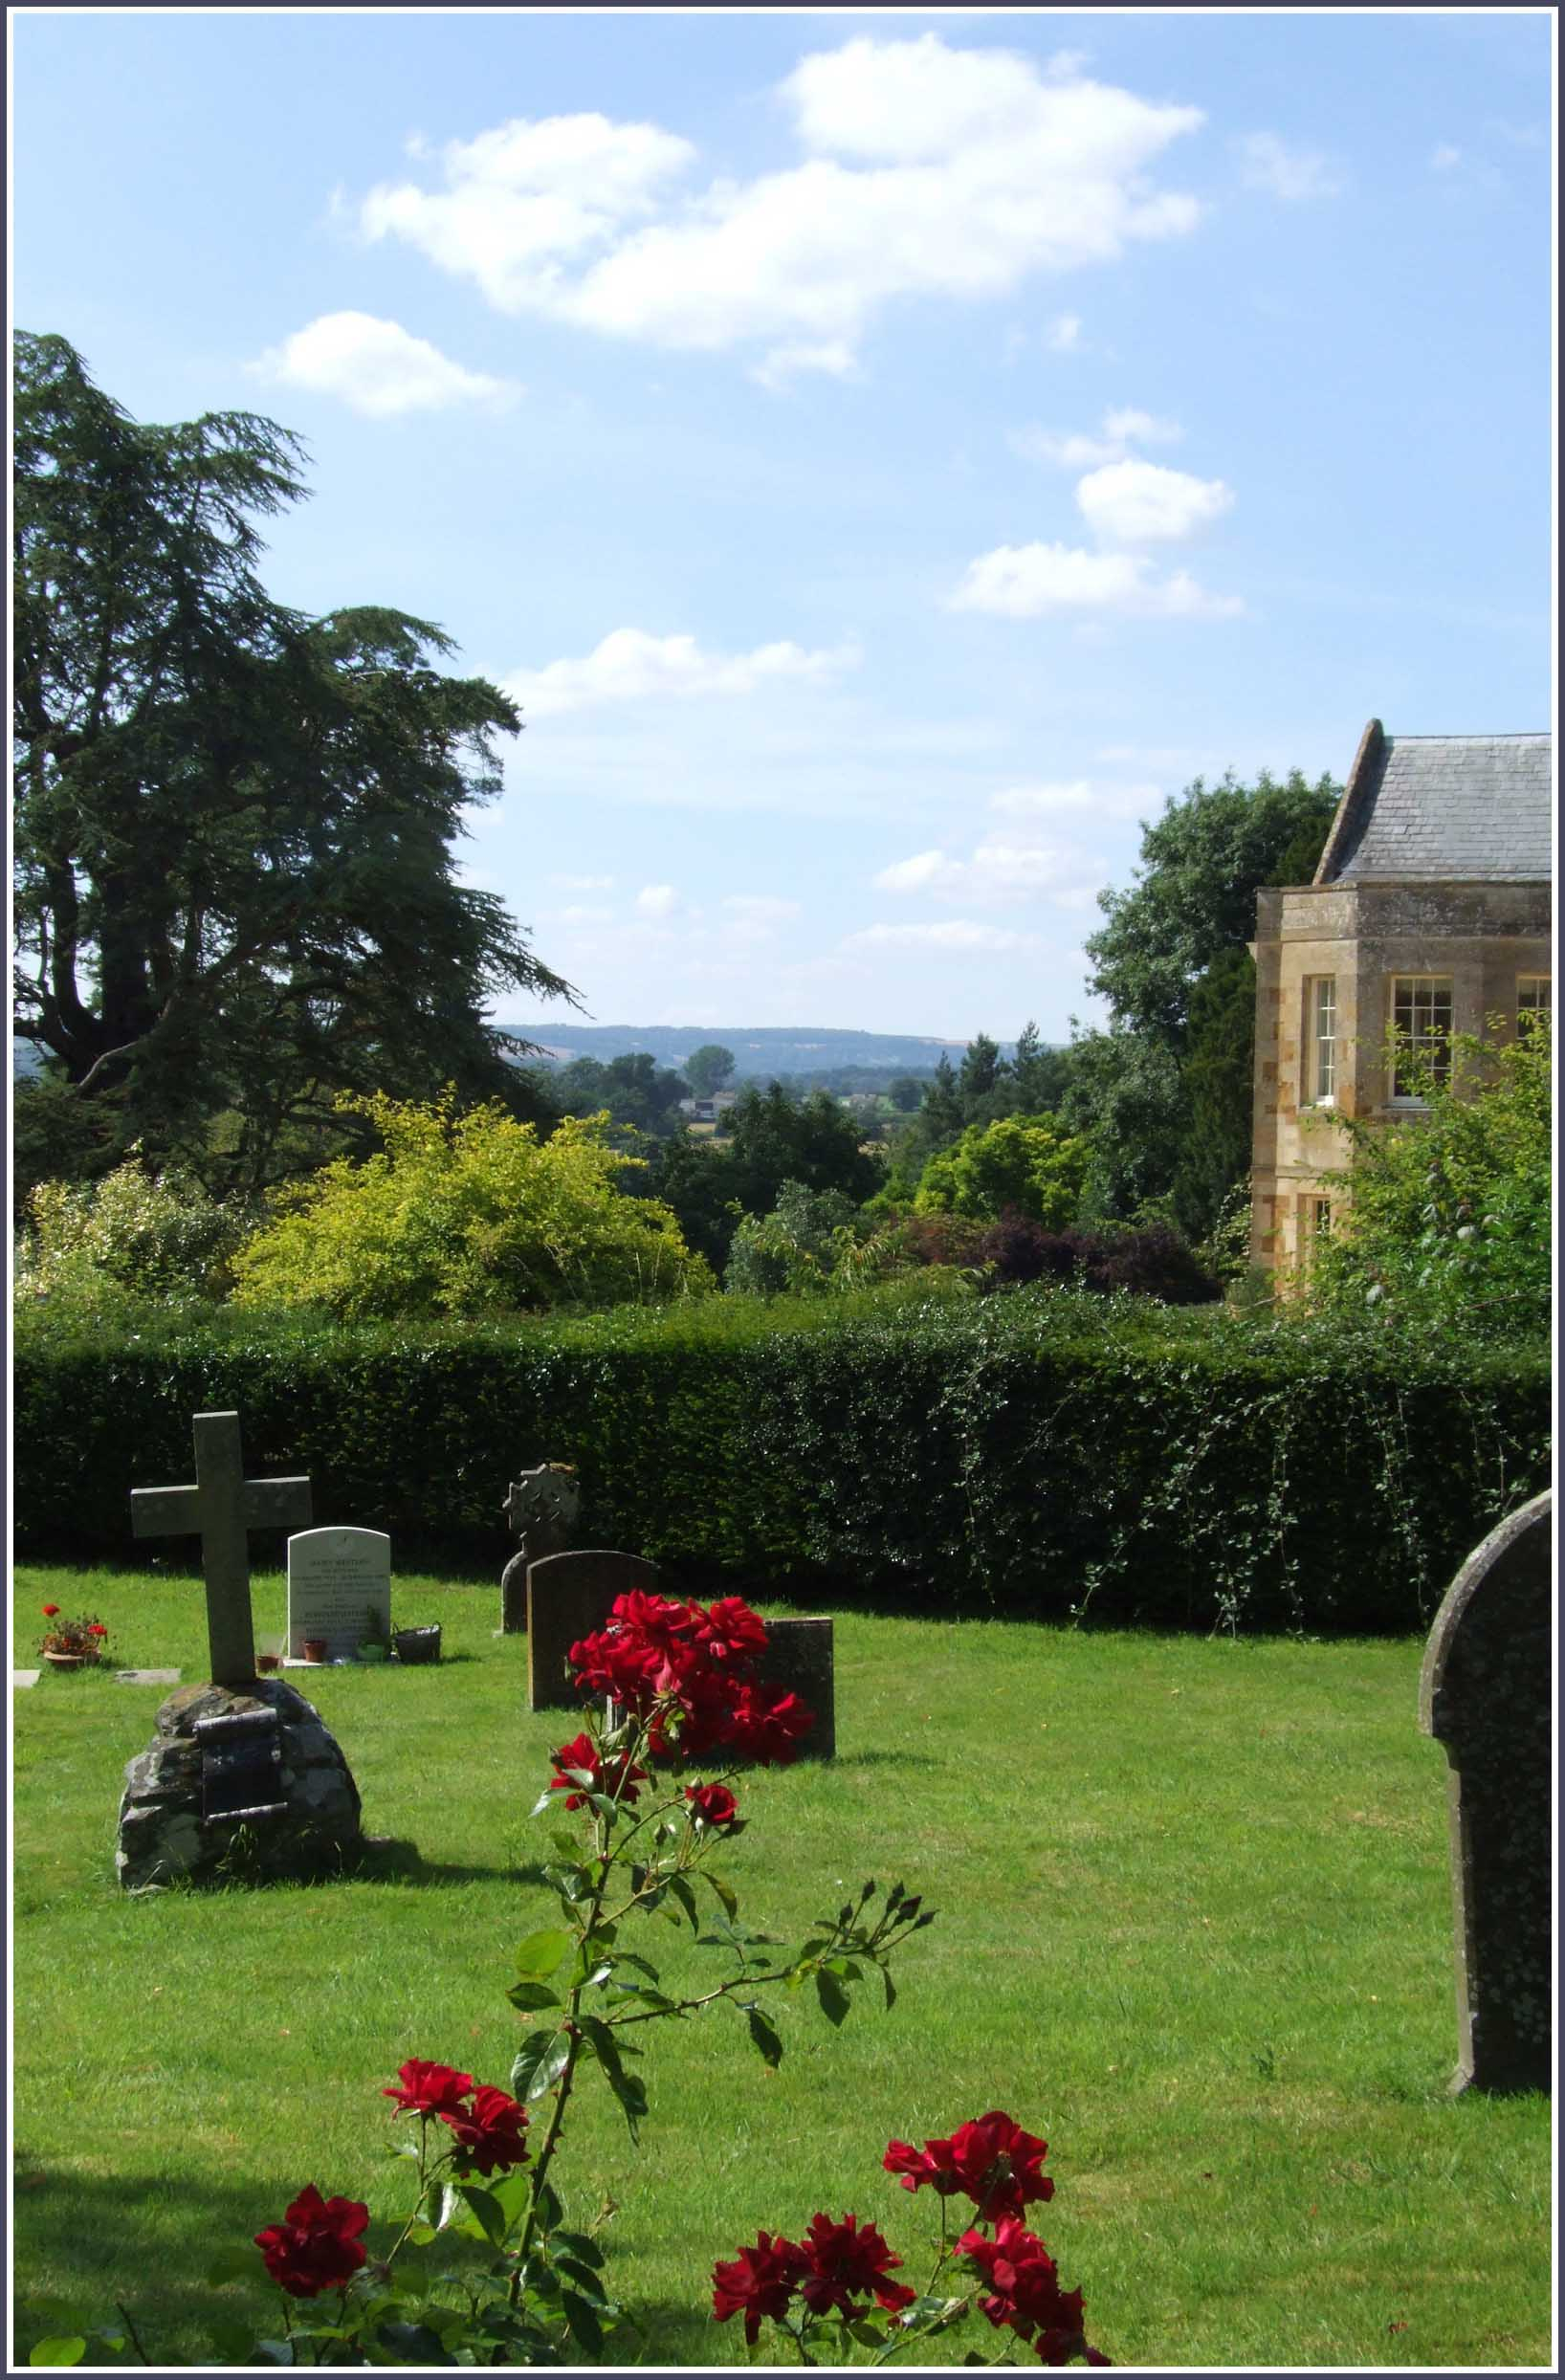 Gravestones with trees and hills beyond